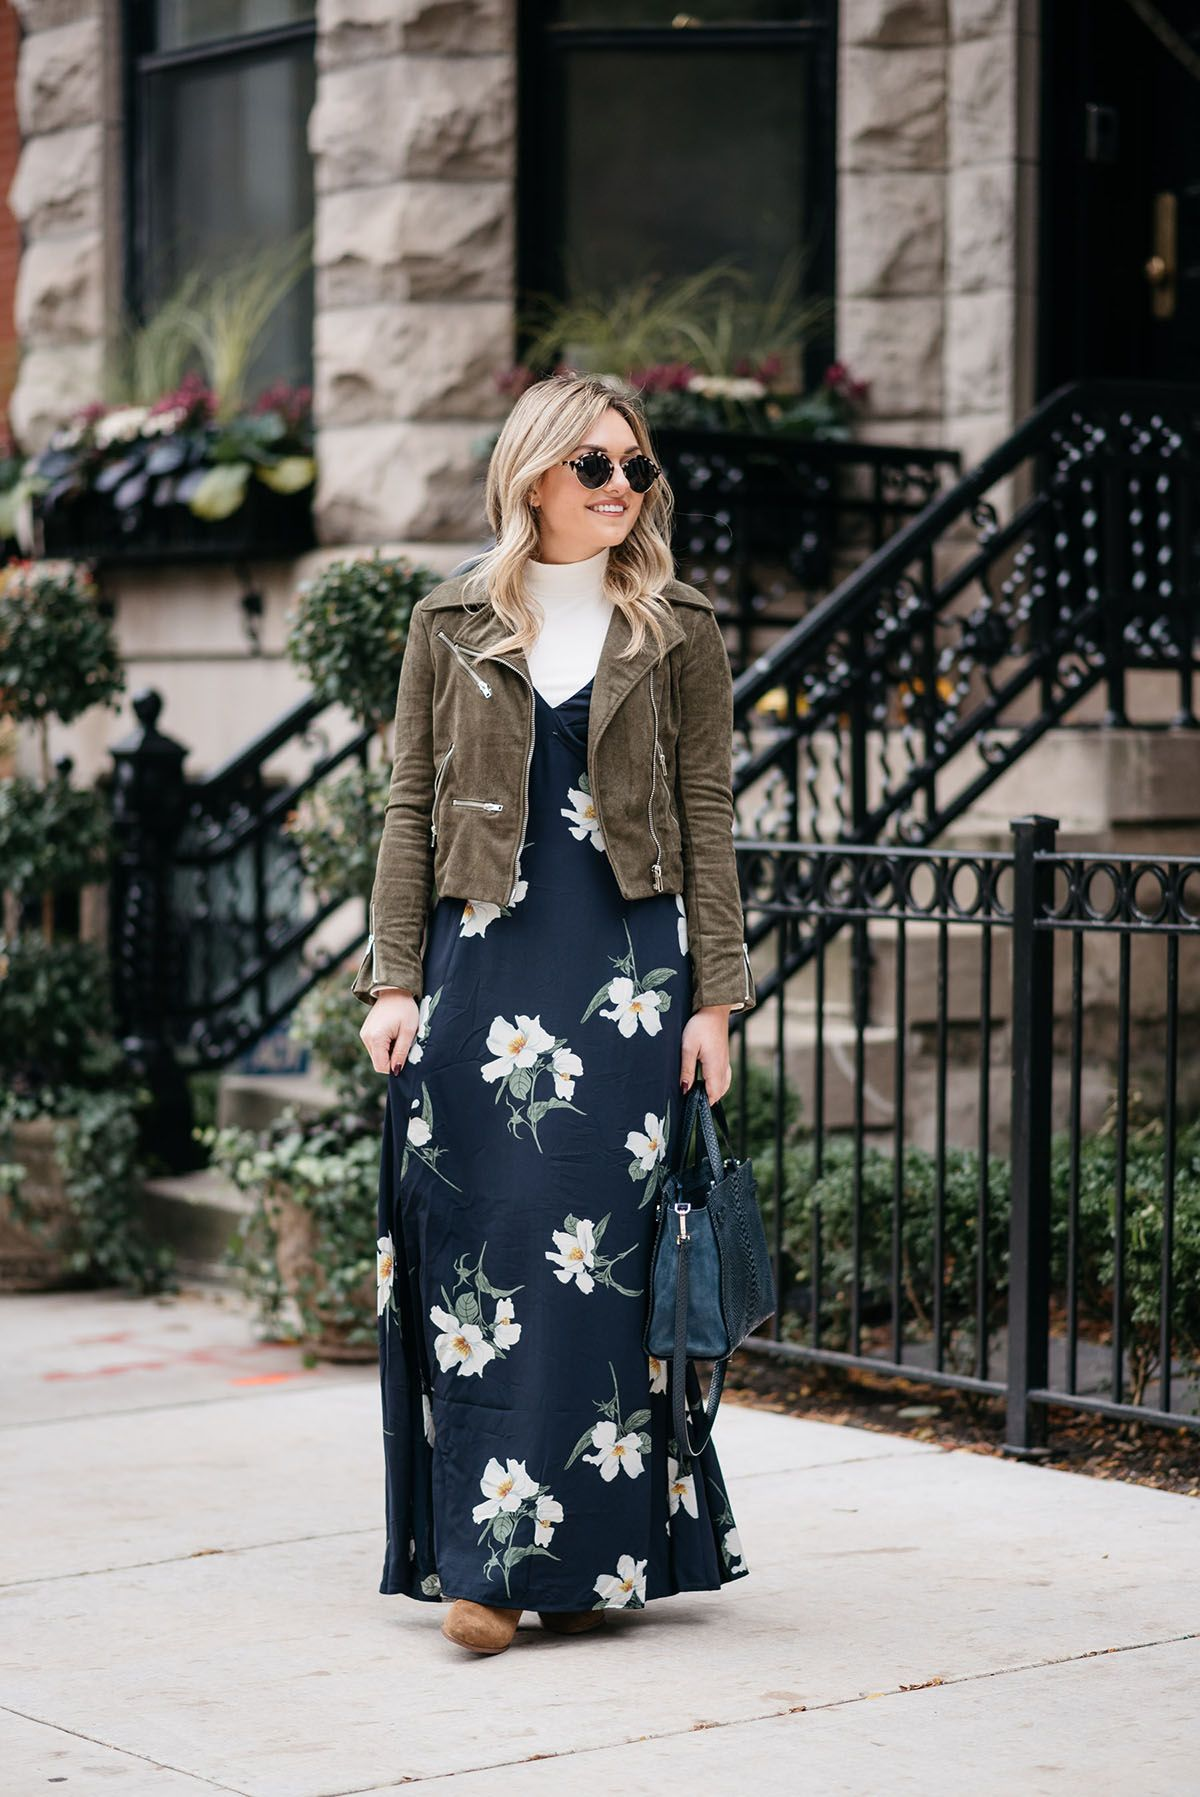 How To Wear A Floral Maxi In The Fall With Layers Bows Sequins Maxi Dress Outfit Fall Maxi Dresses Fall Floral Maxi Dress [ 1797 x 1200 Pixel ]